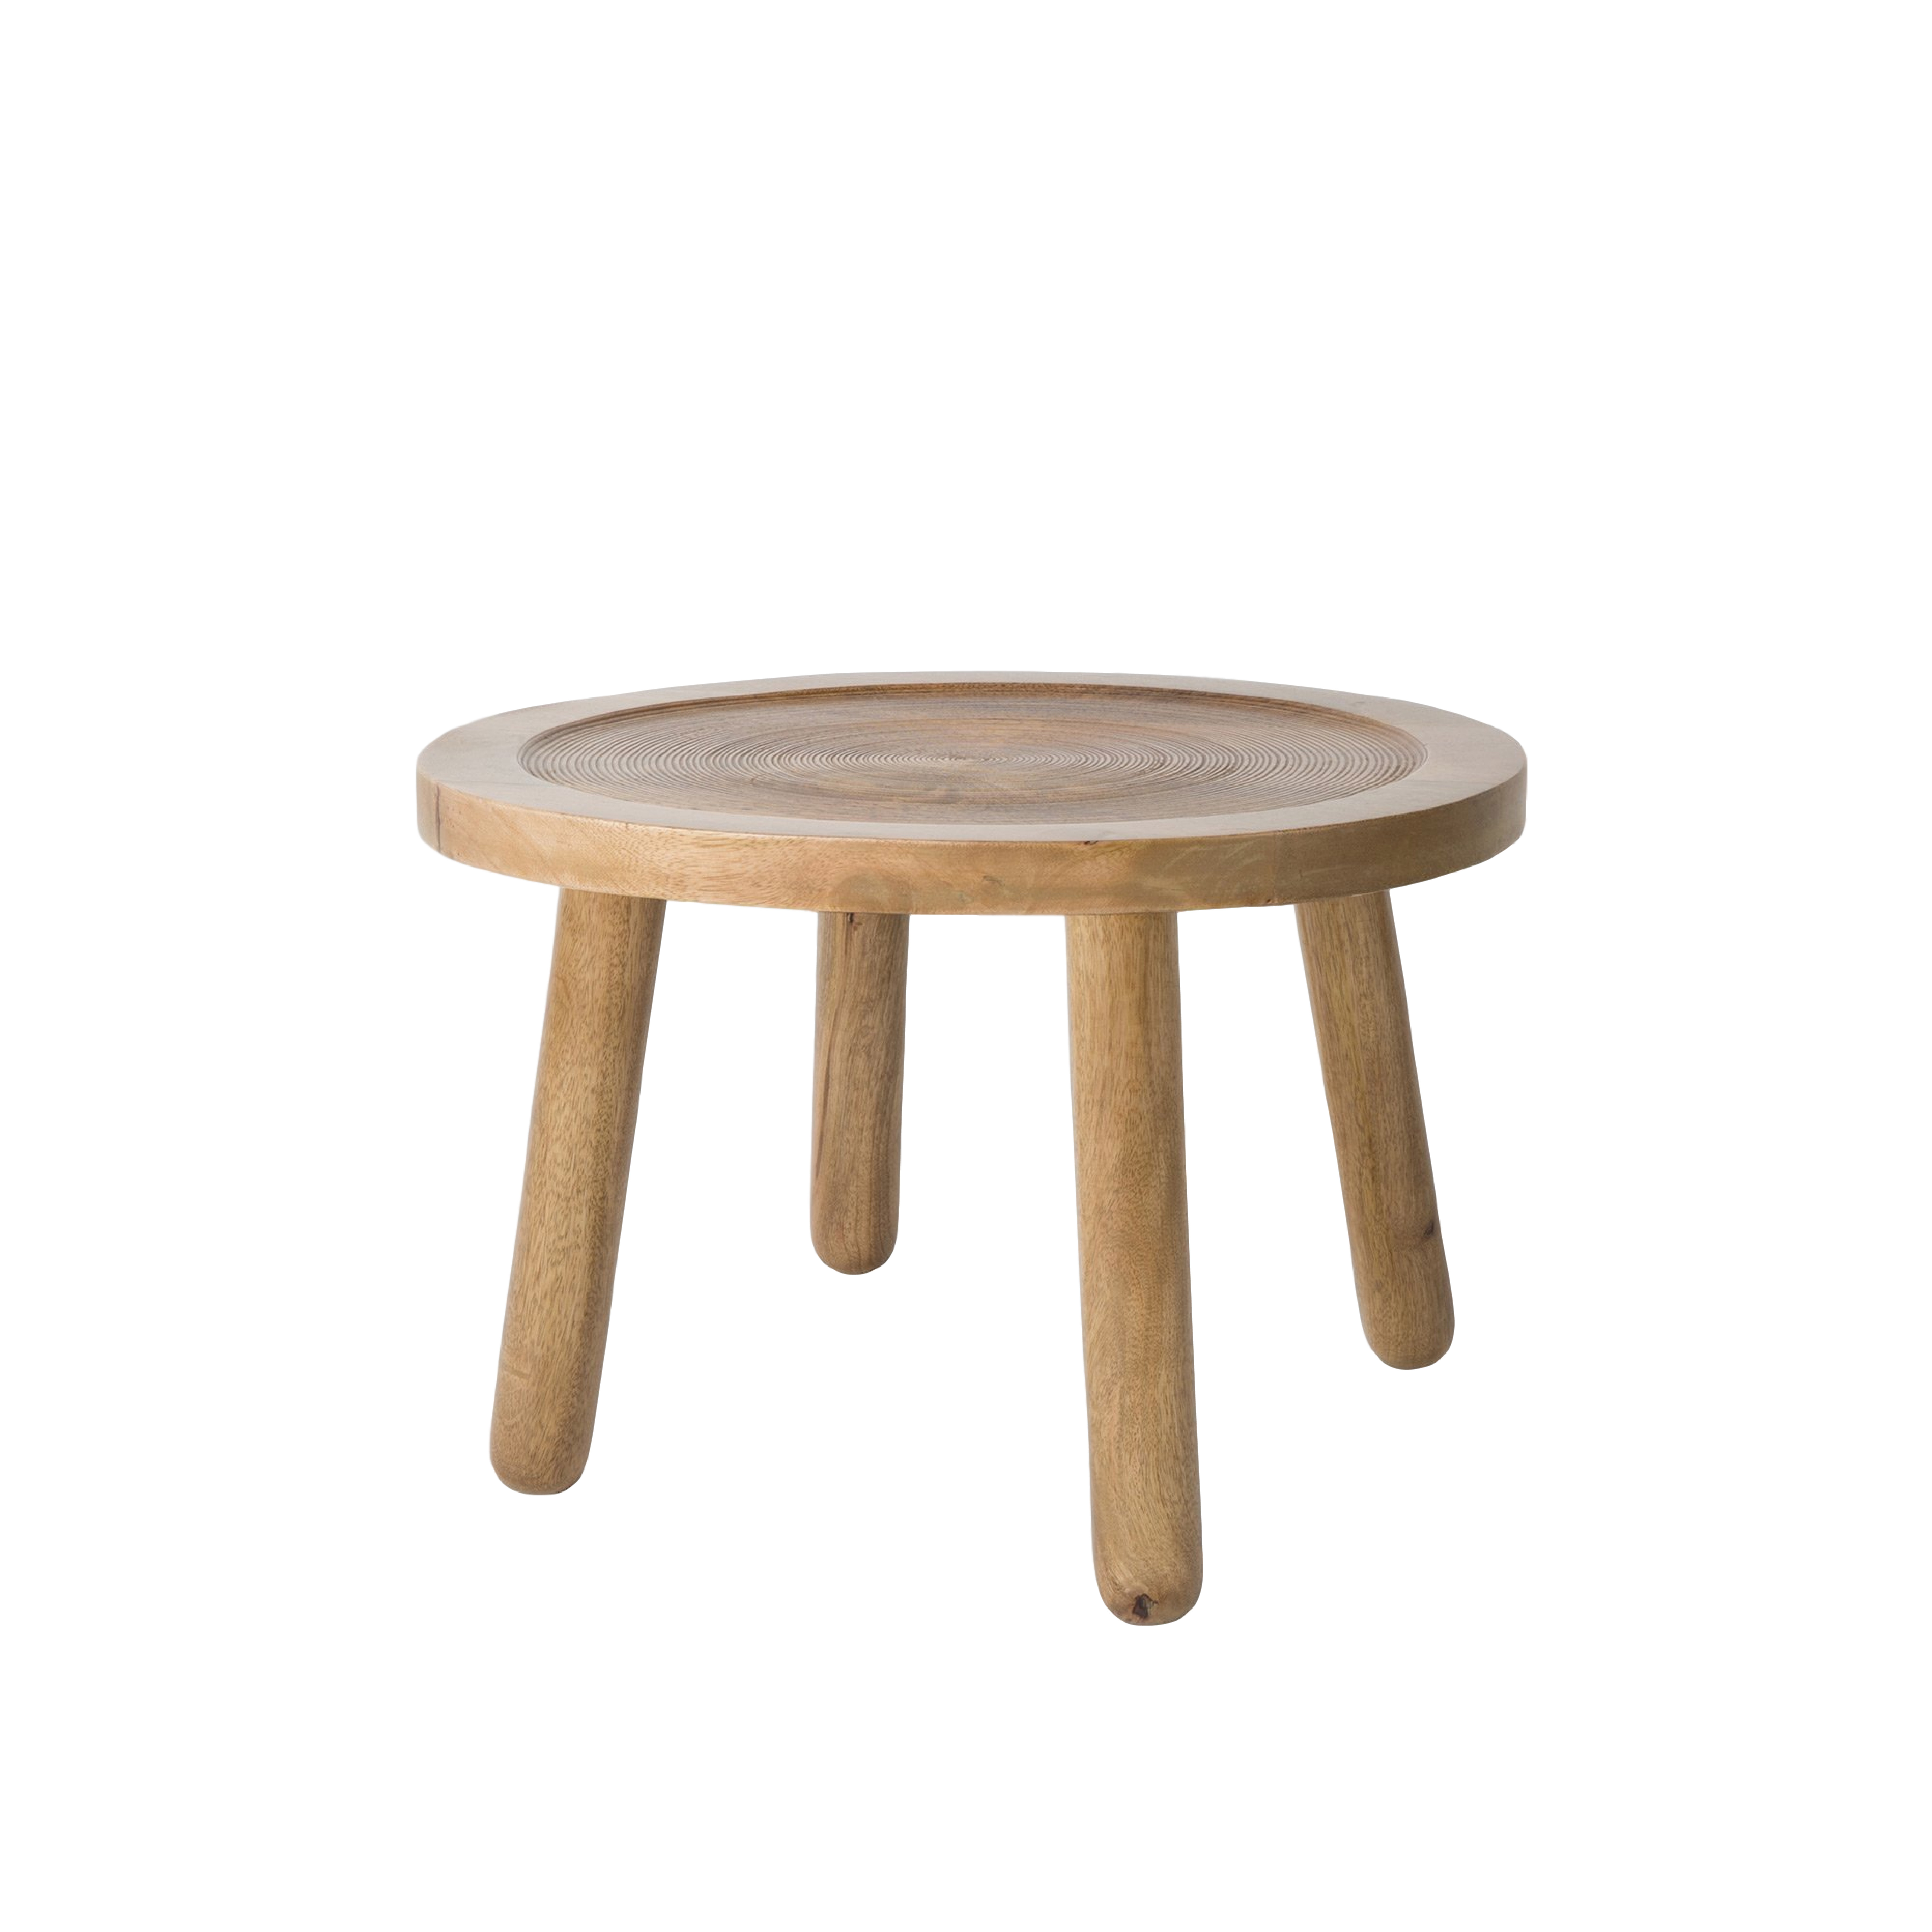 TABLE BASSE DENDRON ZUIVER SUR 3SUISSES.FR – 99€